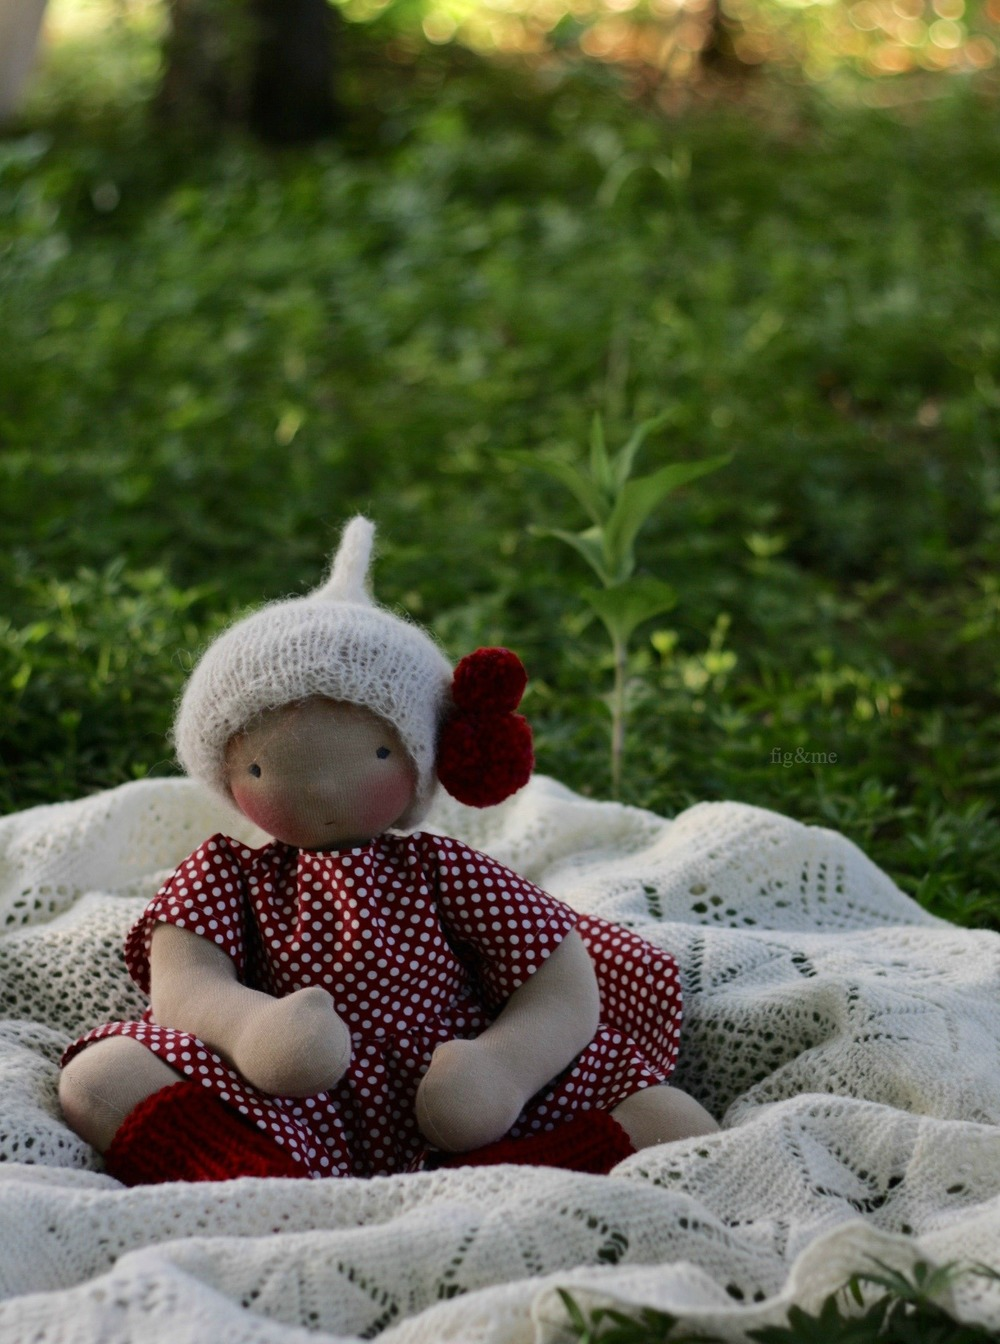 Rowanberry, a natural baby-style doll by Figandme.